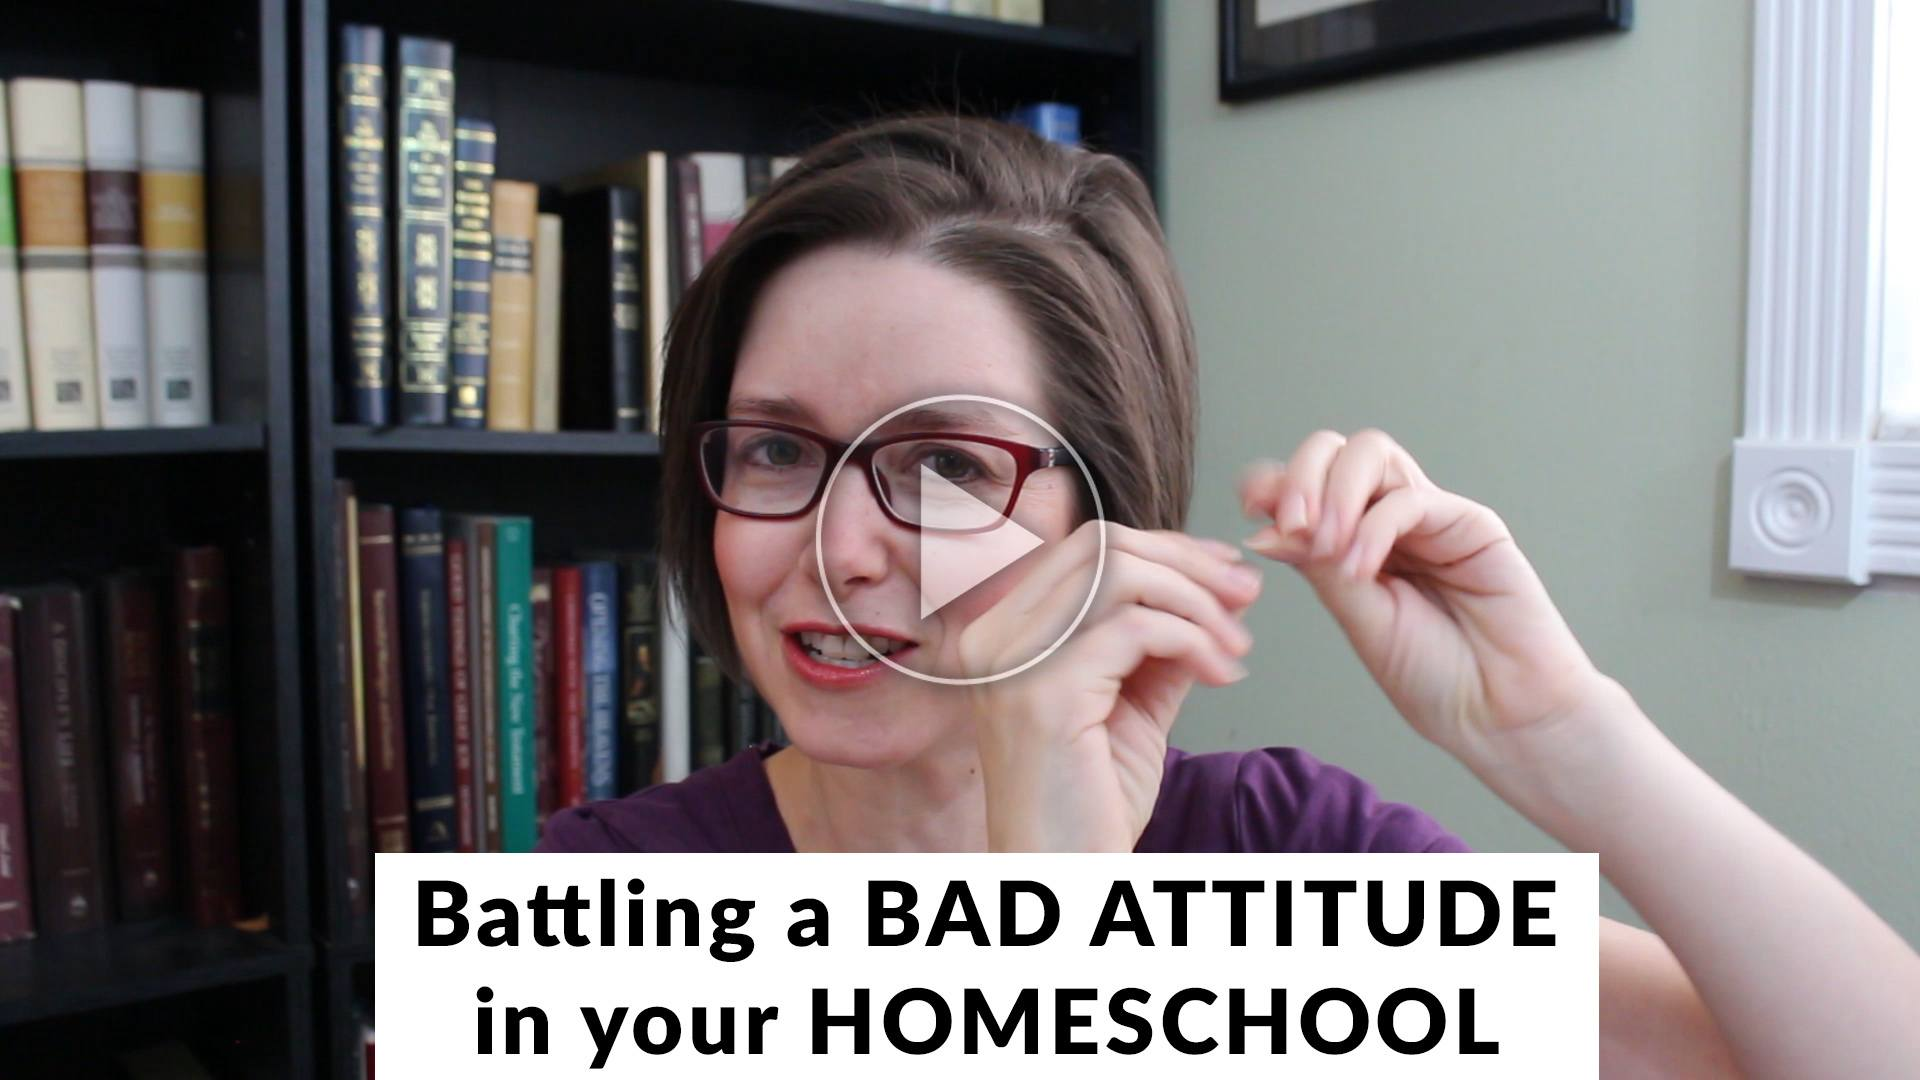 How do you fight the homeschool battle and win? If you get a few key things in place, you'll find that you have fewer battles and more peace in your homeschool. | Homeschool bad attitude | Homeschool defiant child | How to motivate homeschool child | homeschool battles | Uncooperative homeschooler |